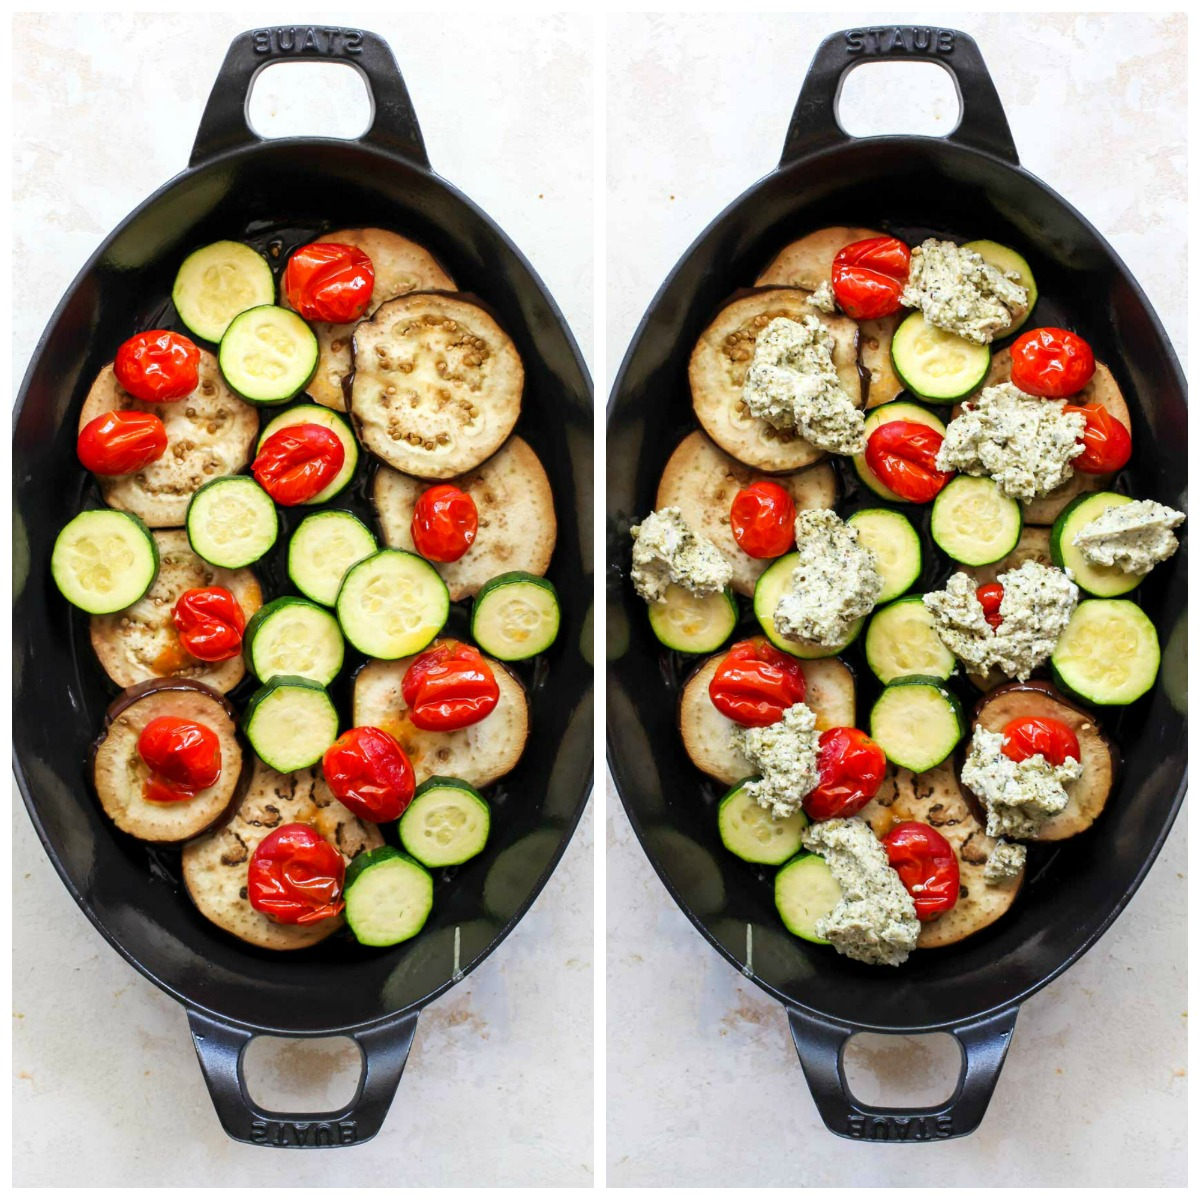 Eggplant, zucchini, and tomatoes layered in a black baking pan